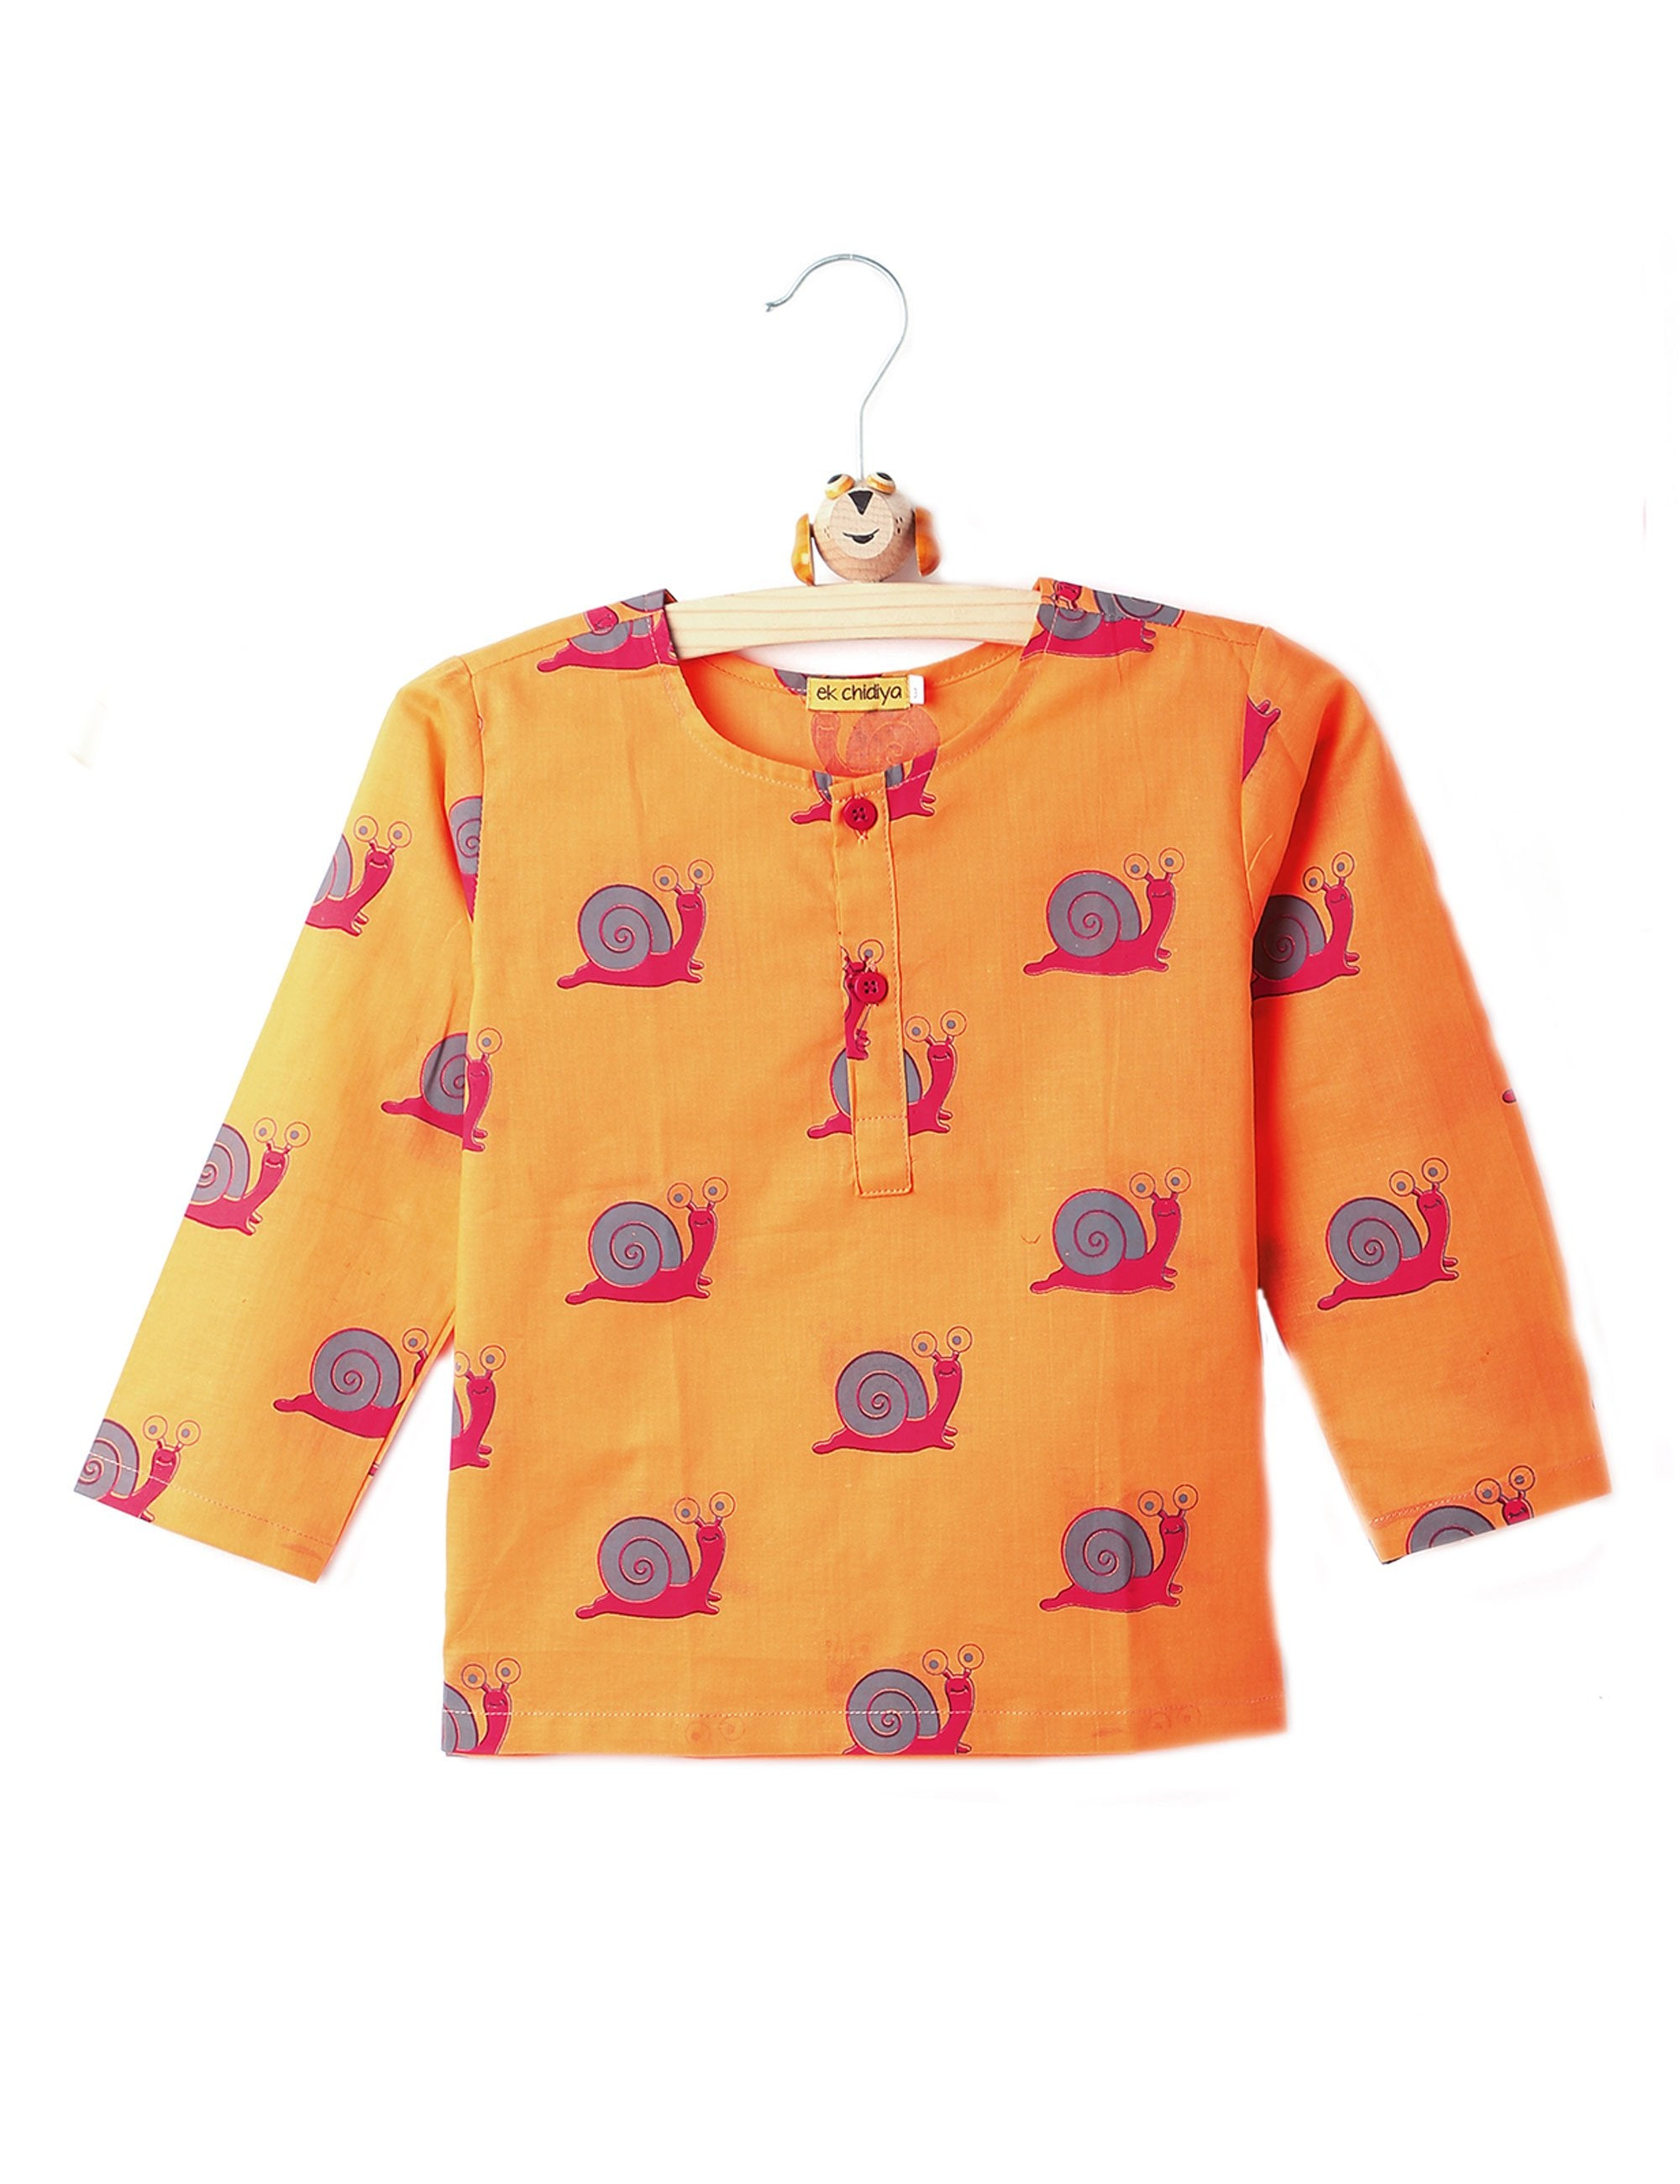 Snail Printed Kurta in Orange Colour for Boys & Girls